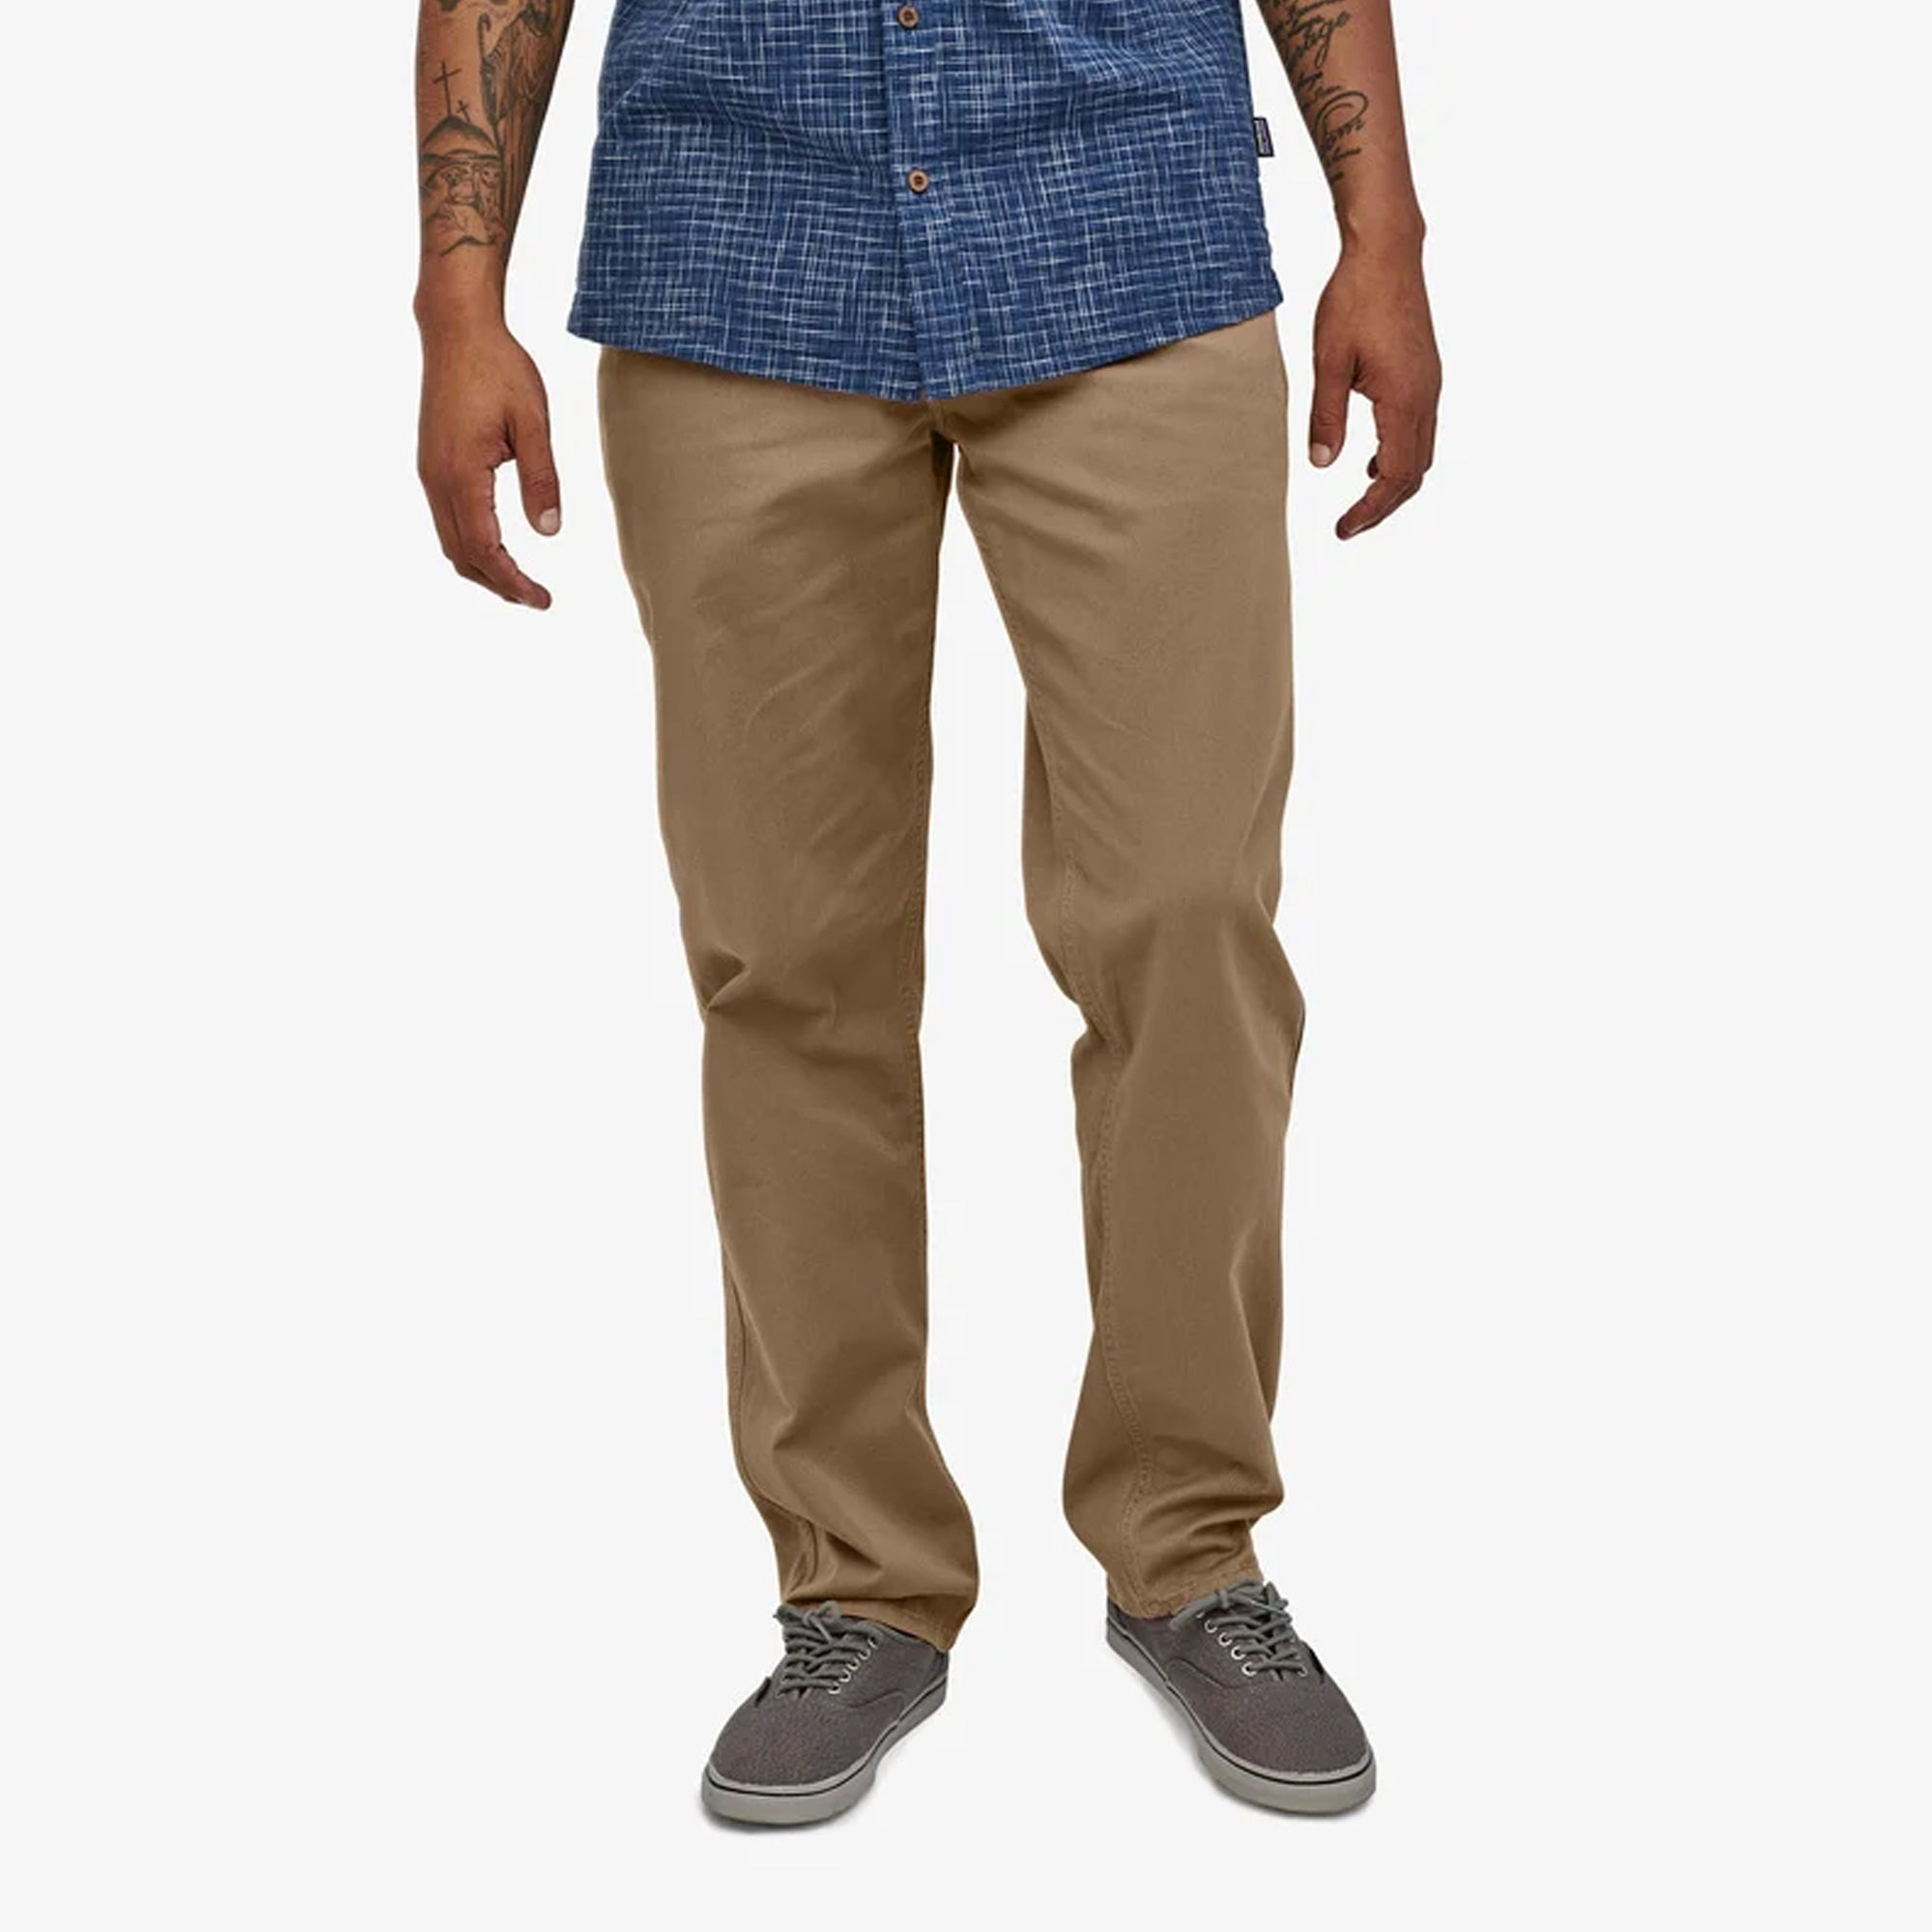 Patagonia Four Canyons Twill Men's Regular-Fit Pants